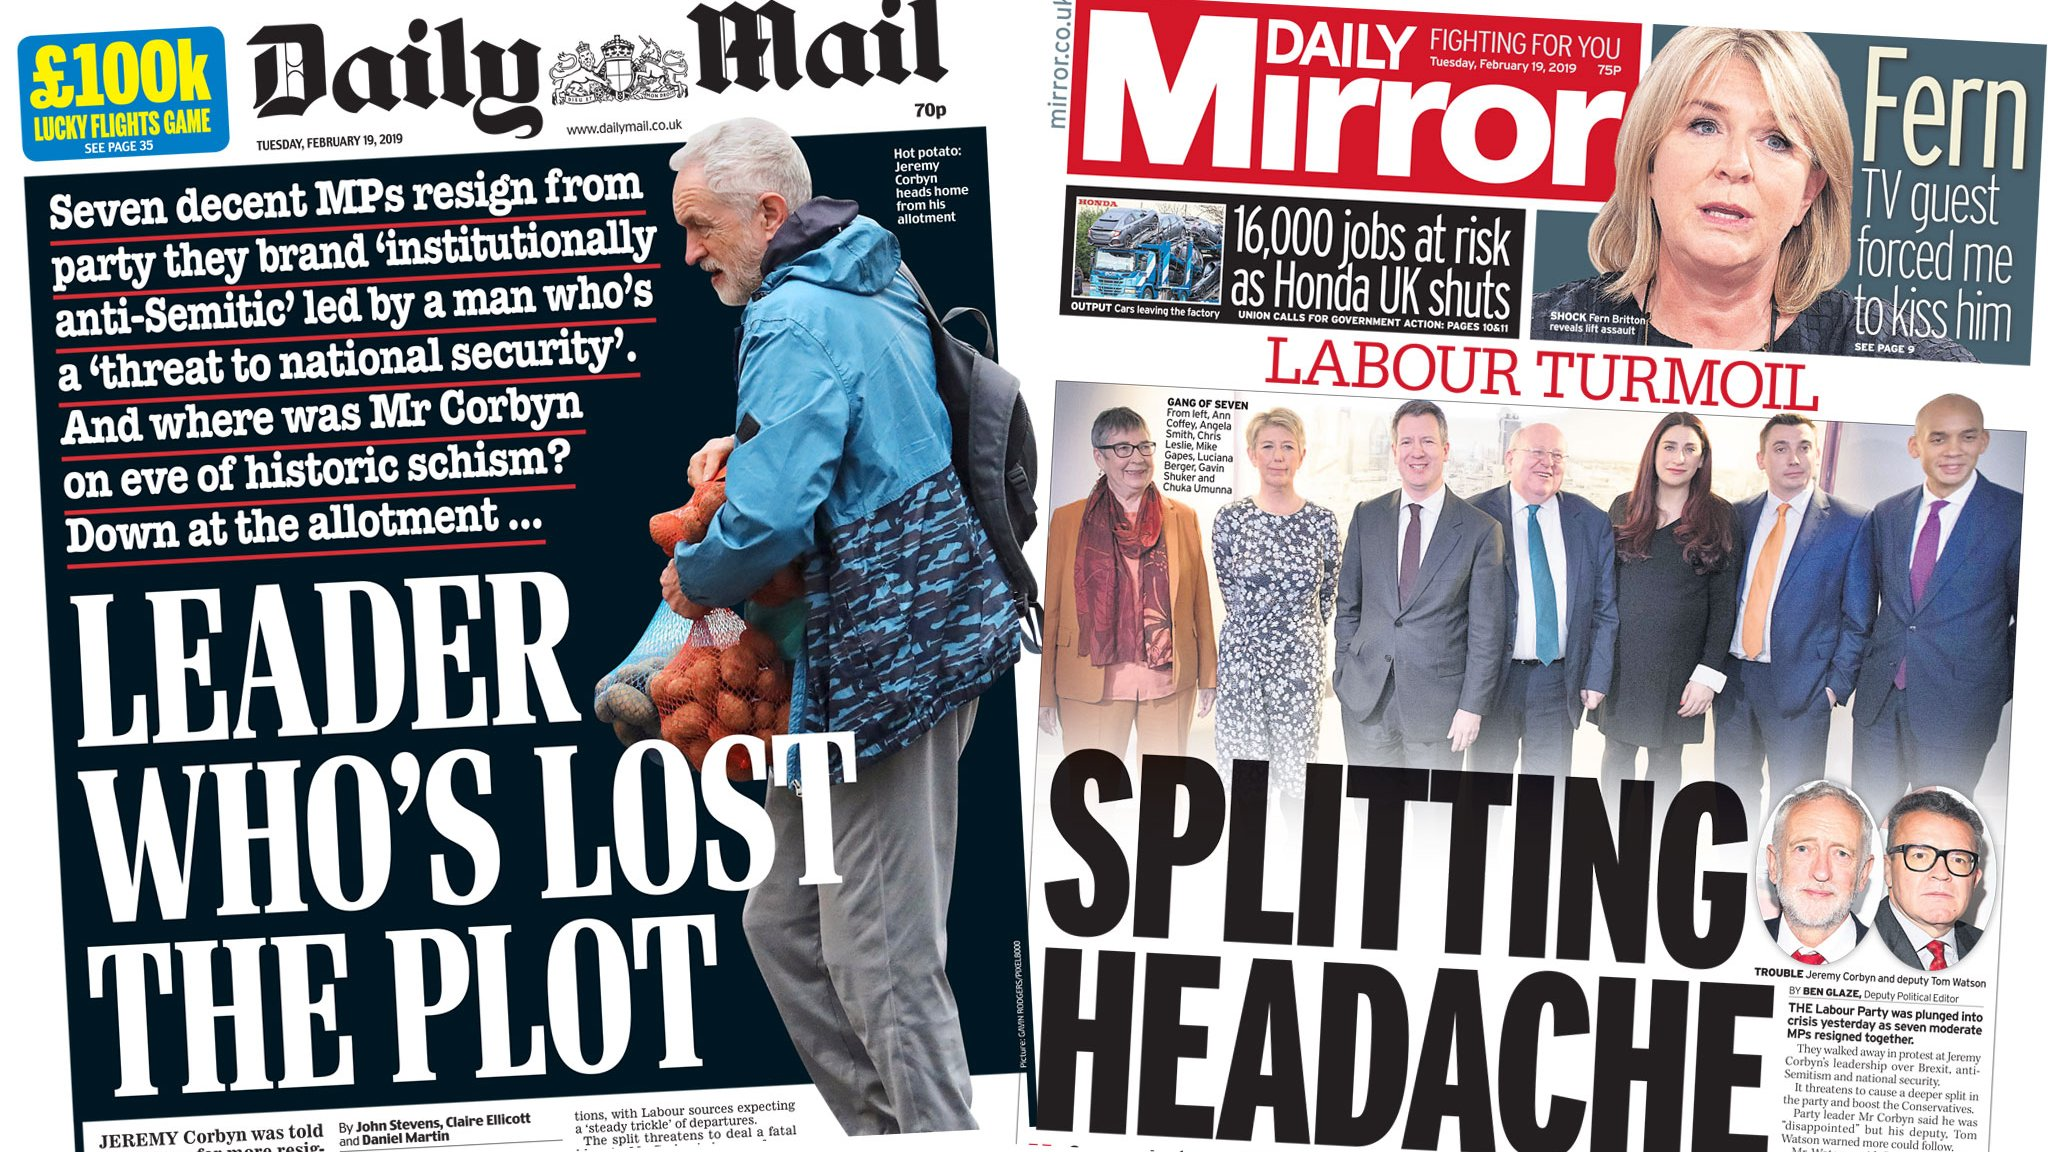 The Papers: 'Splitting headache' for Corbyn over exits